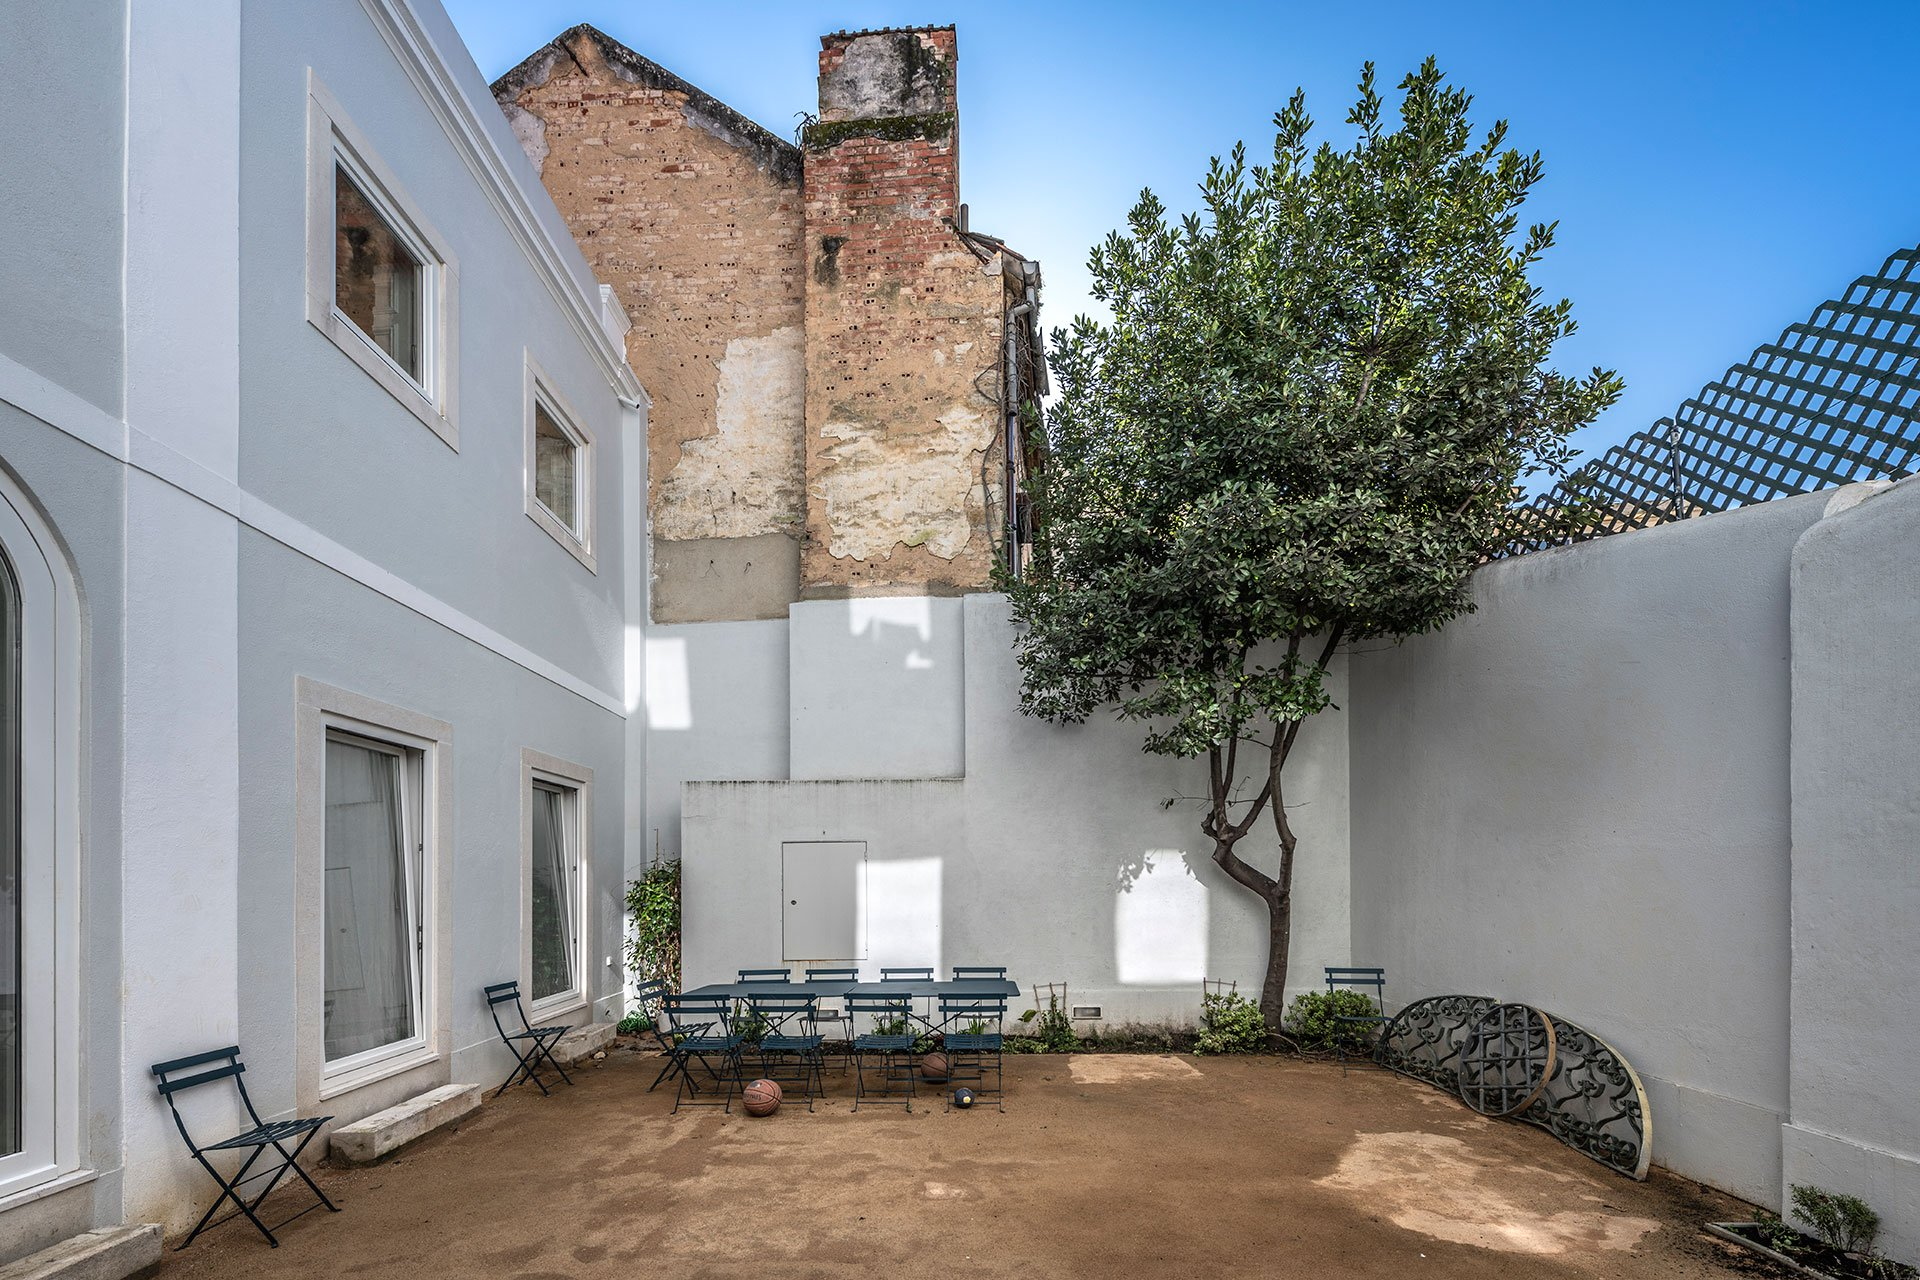 a cool inner courtyard with a tree